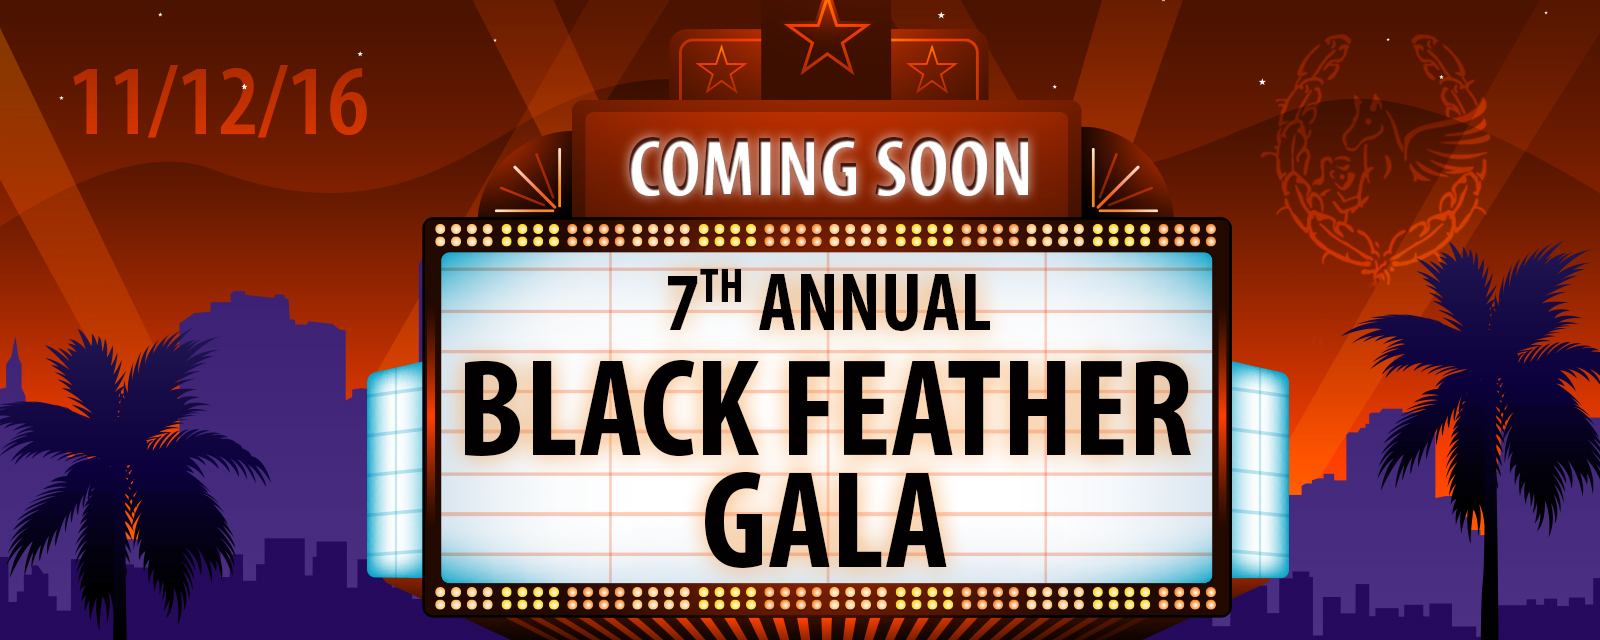 black-feather-gala-2016